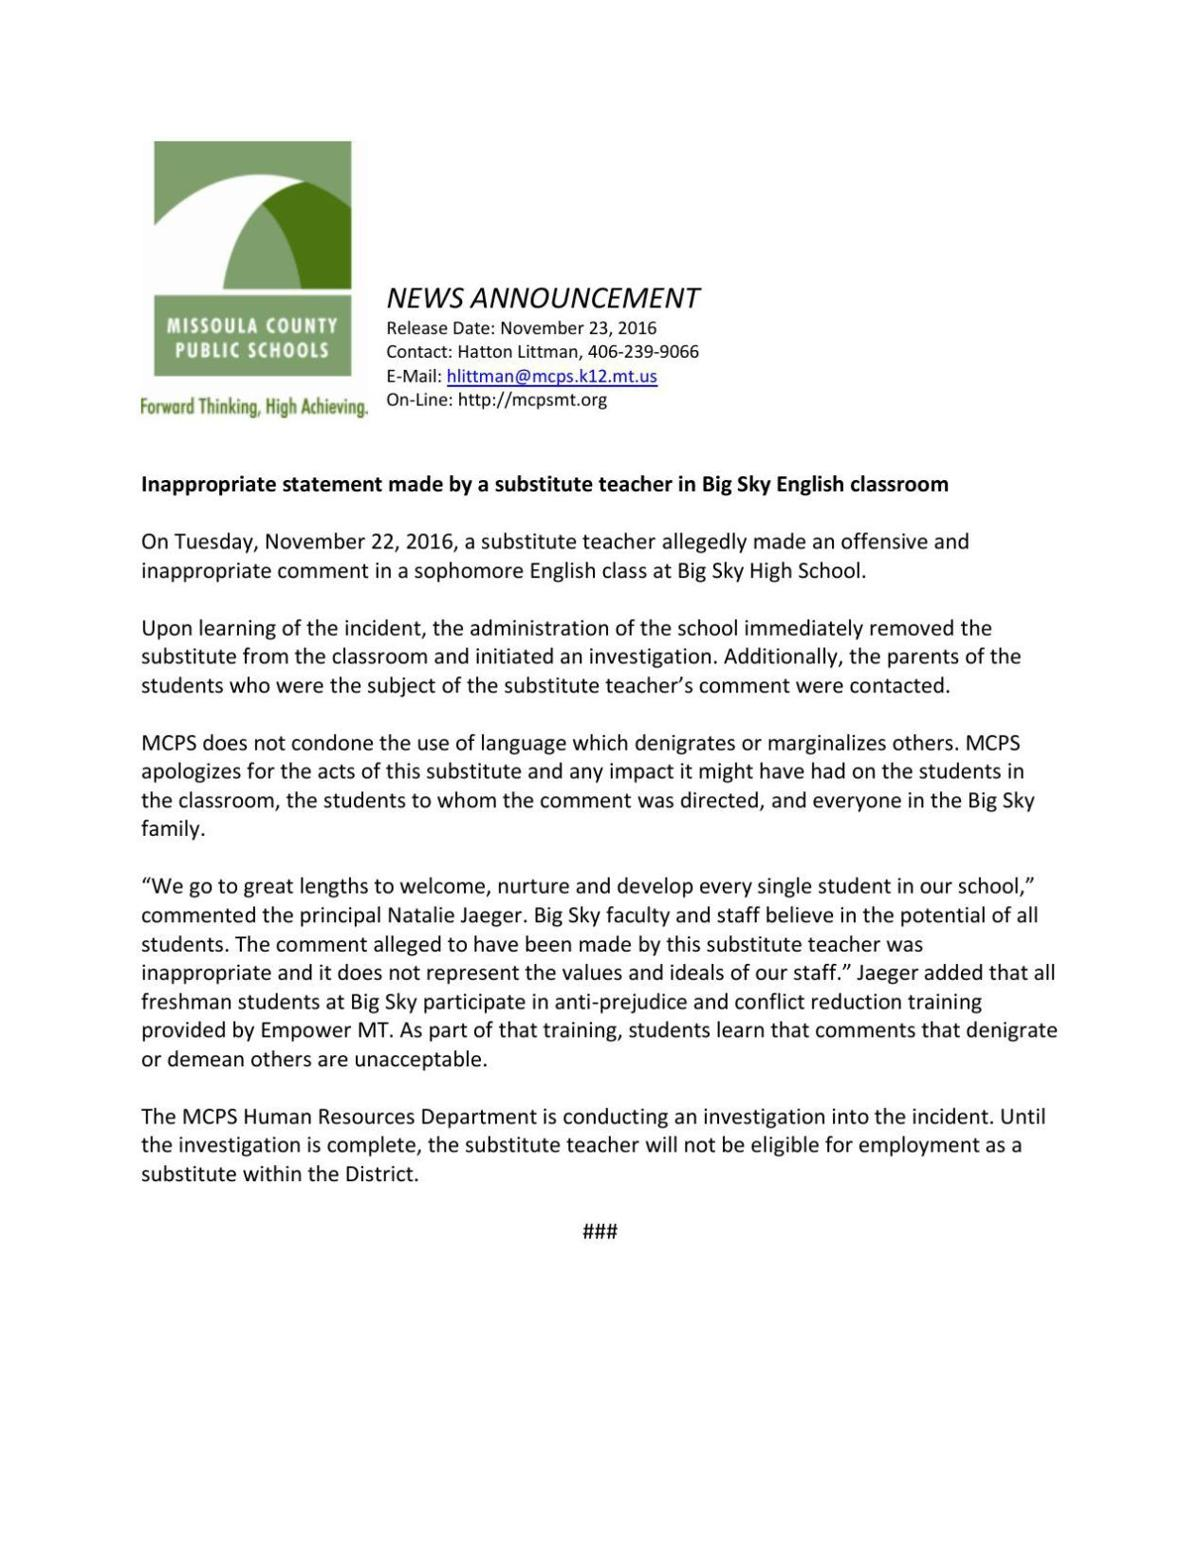 MCPS news release on Big Sky incident